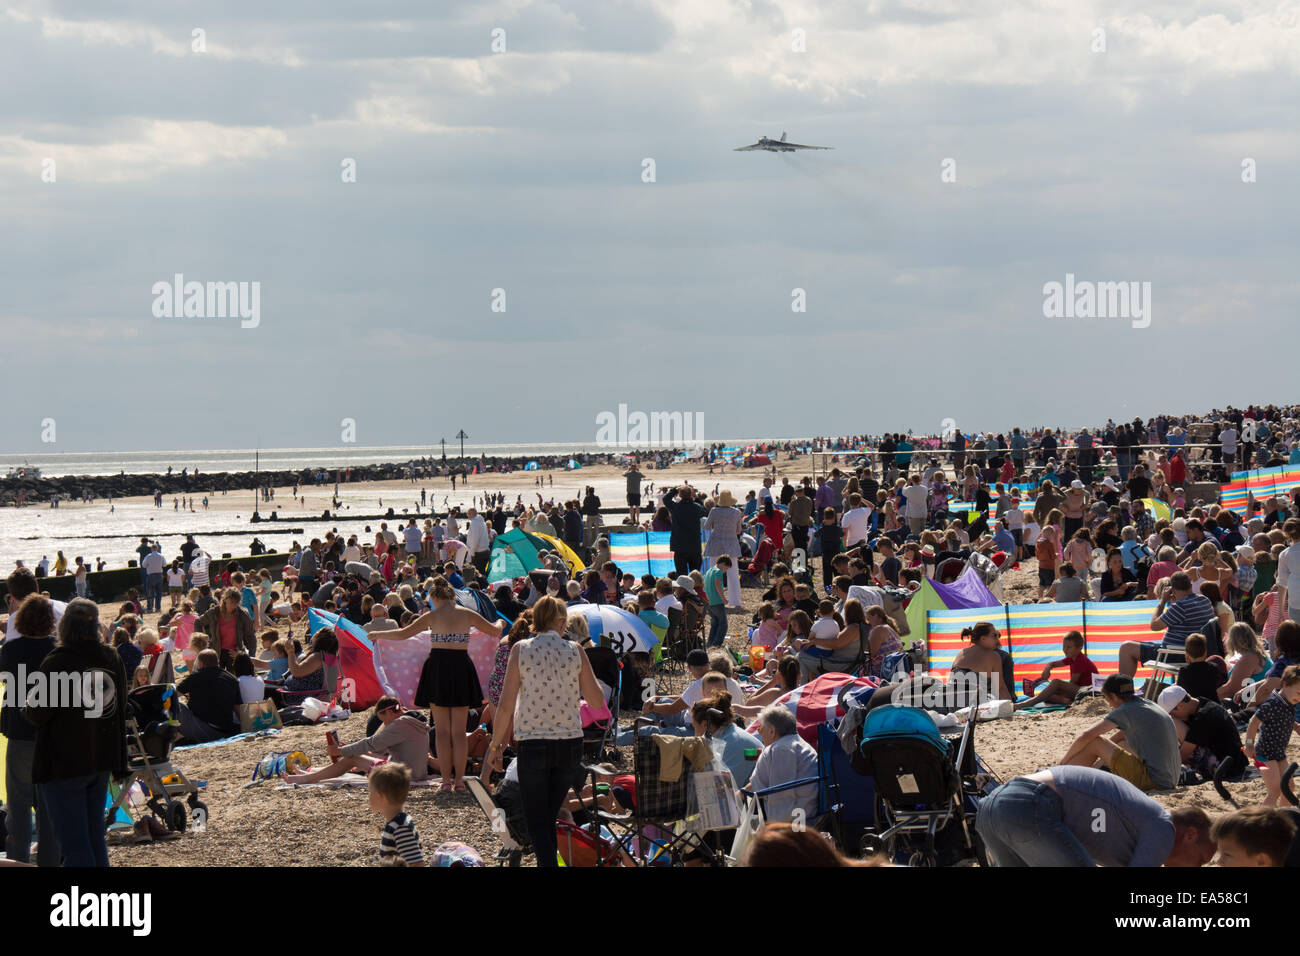 The last flying Avro Vulcan starts it flight past the crowds at Clacton-on-Sea Airshow, Essex. The airshow attracts - Stock Image